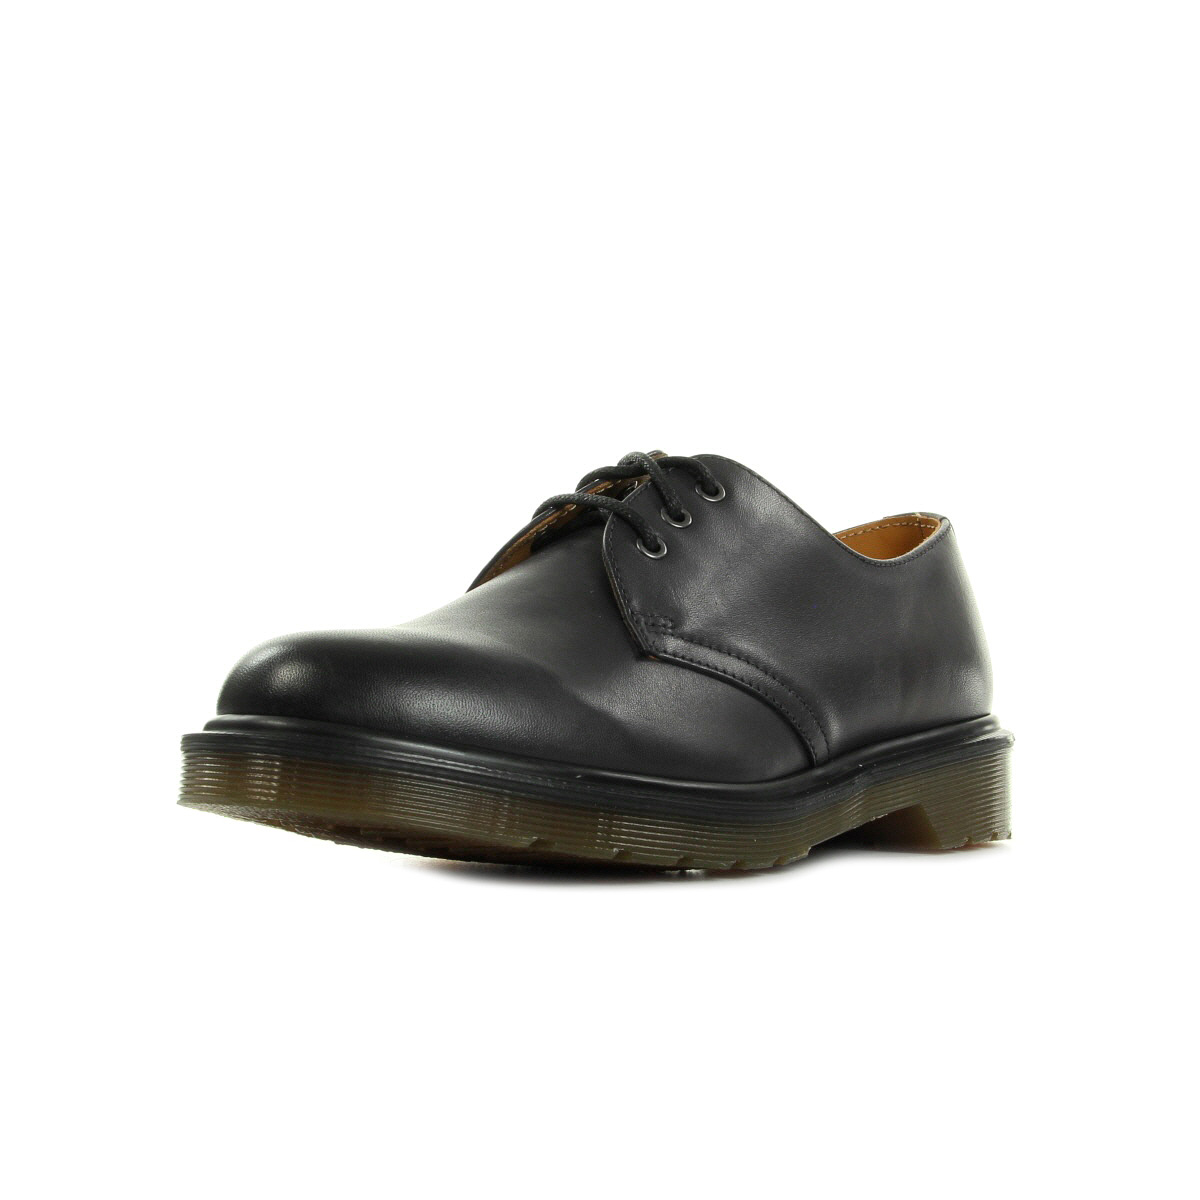 Chaussures Doc Martens 1461 Temperley Charcoal black femme 21153005 fqesb